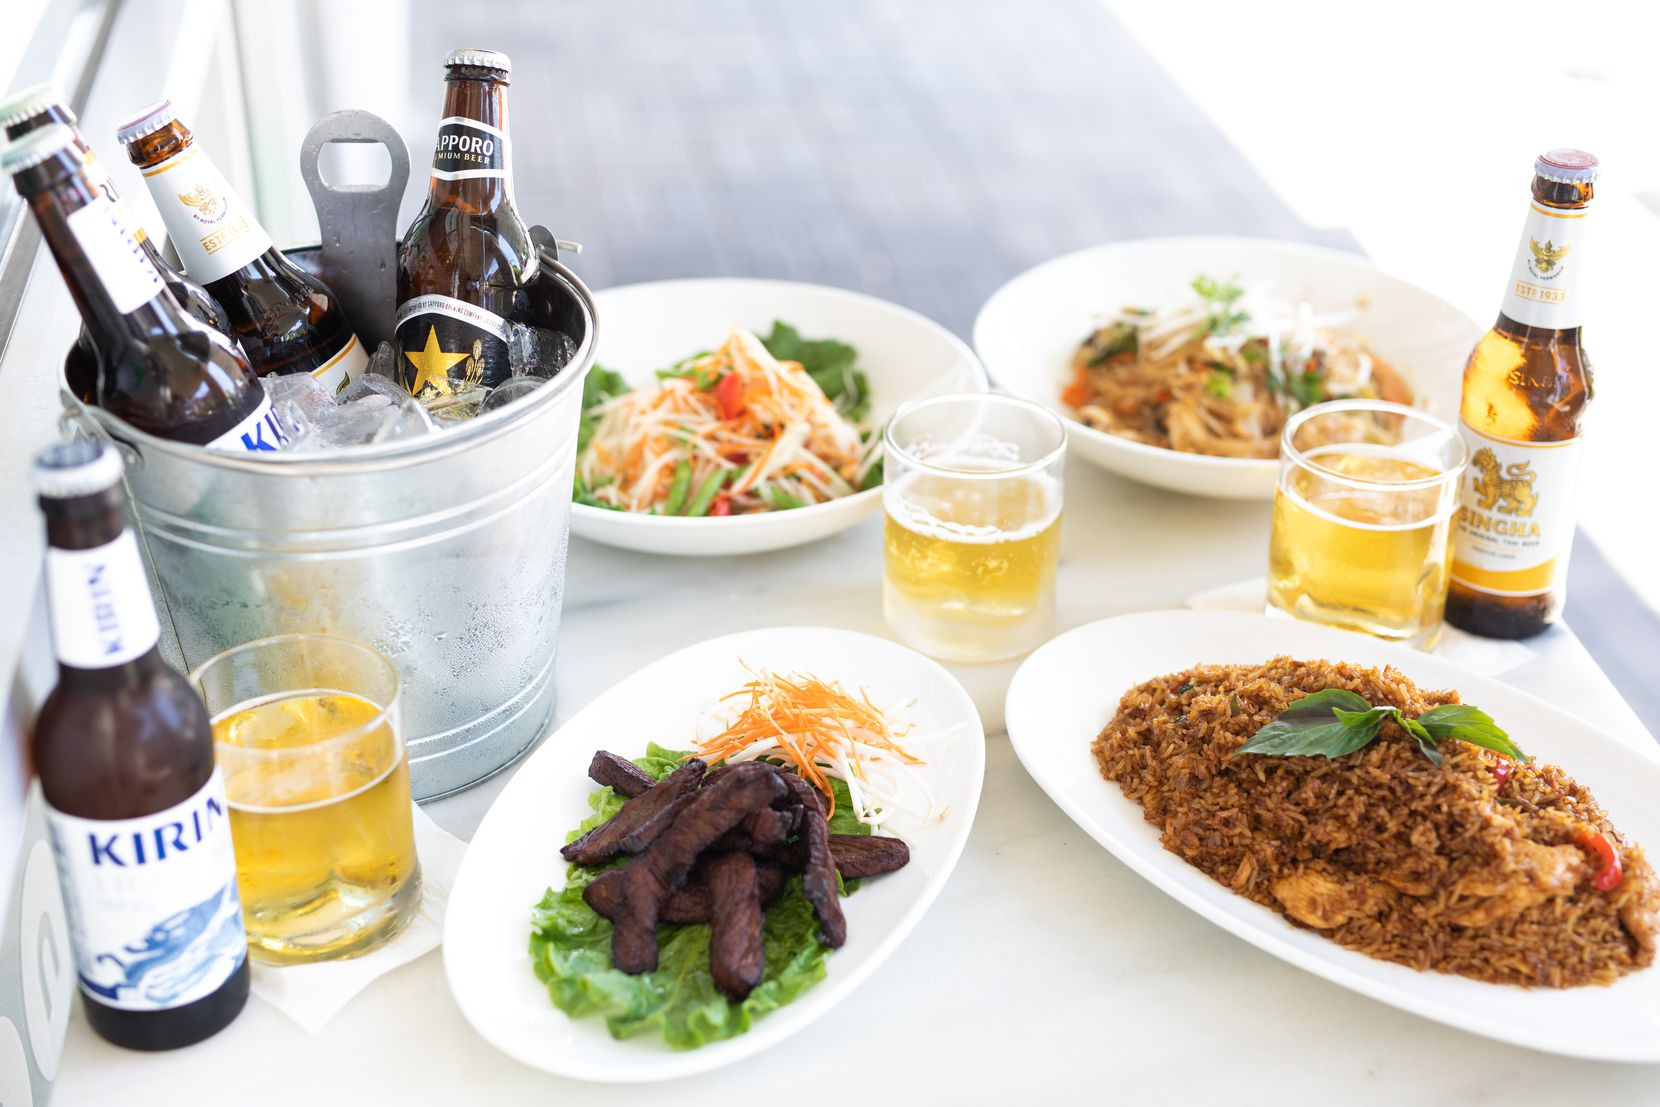 Asian Mint offers its Father s Day Mint Chef at Home kit. The kit includes Thai beef jerky, papaya salad, green basil fried rice, pad woon sen and a six-pack of Asian beer.